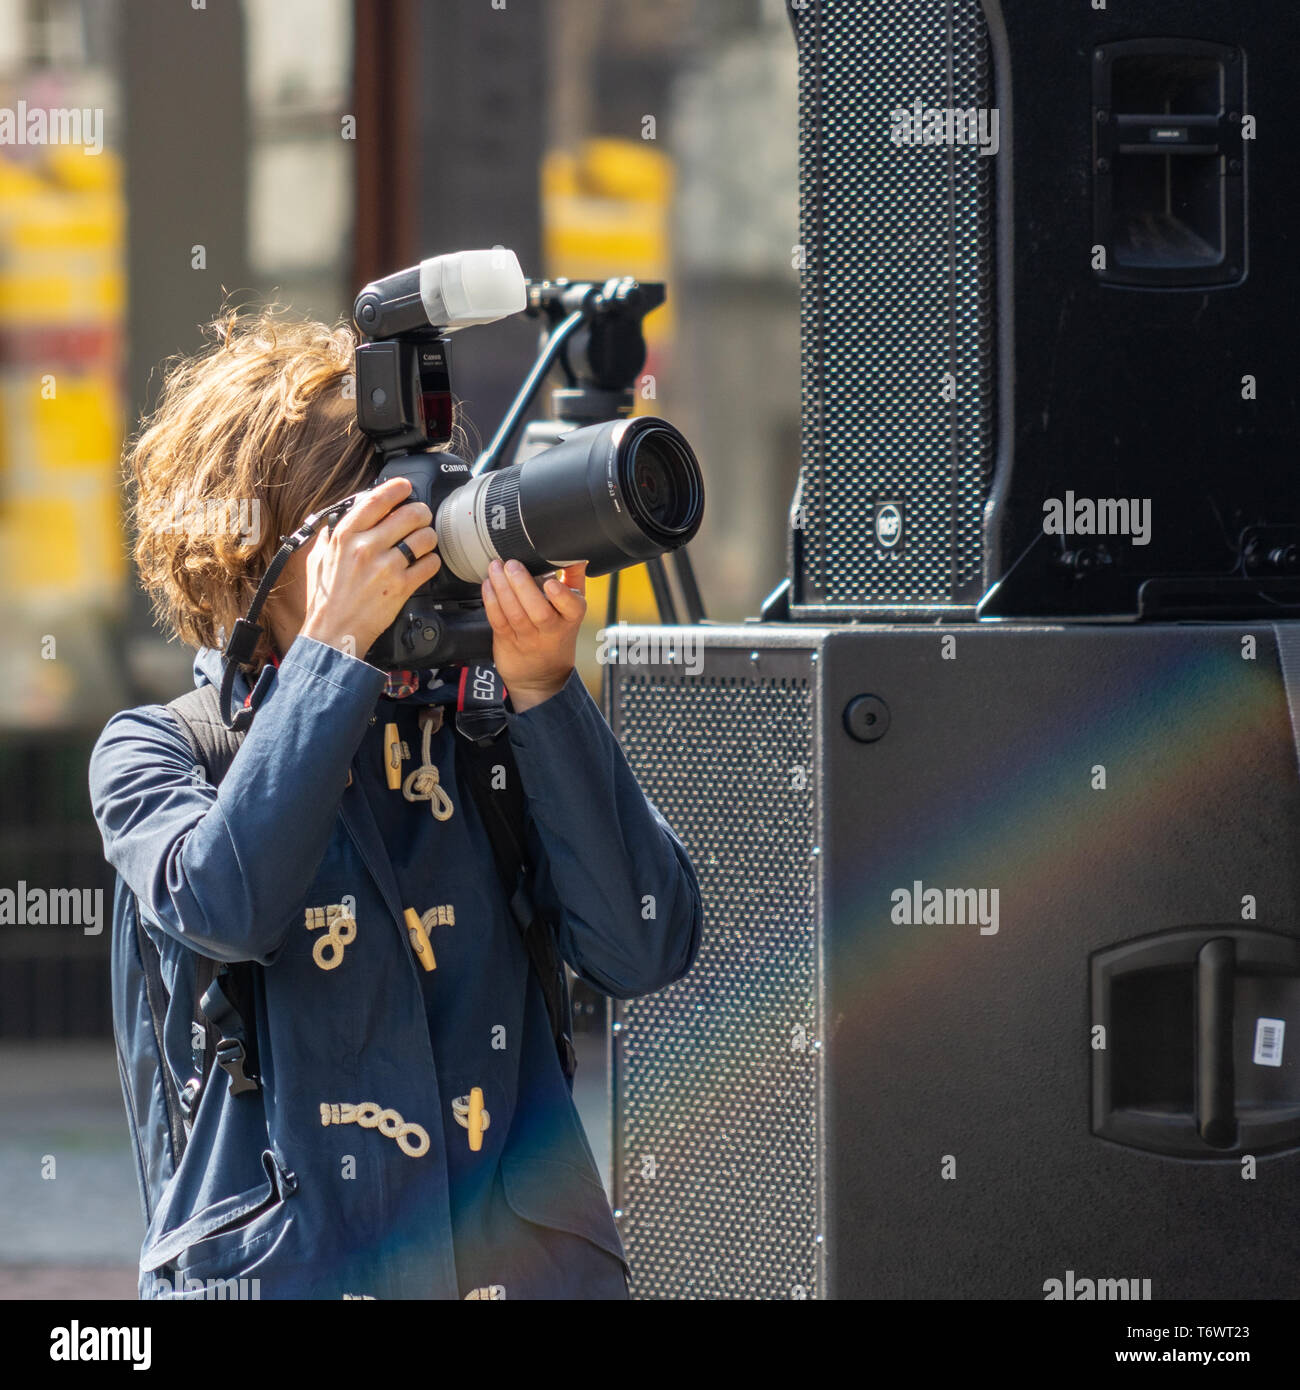 Wolfsburg, Germany, May 1, 2019: Young woman in a blue anorak taking photos with the camera - Stock Image